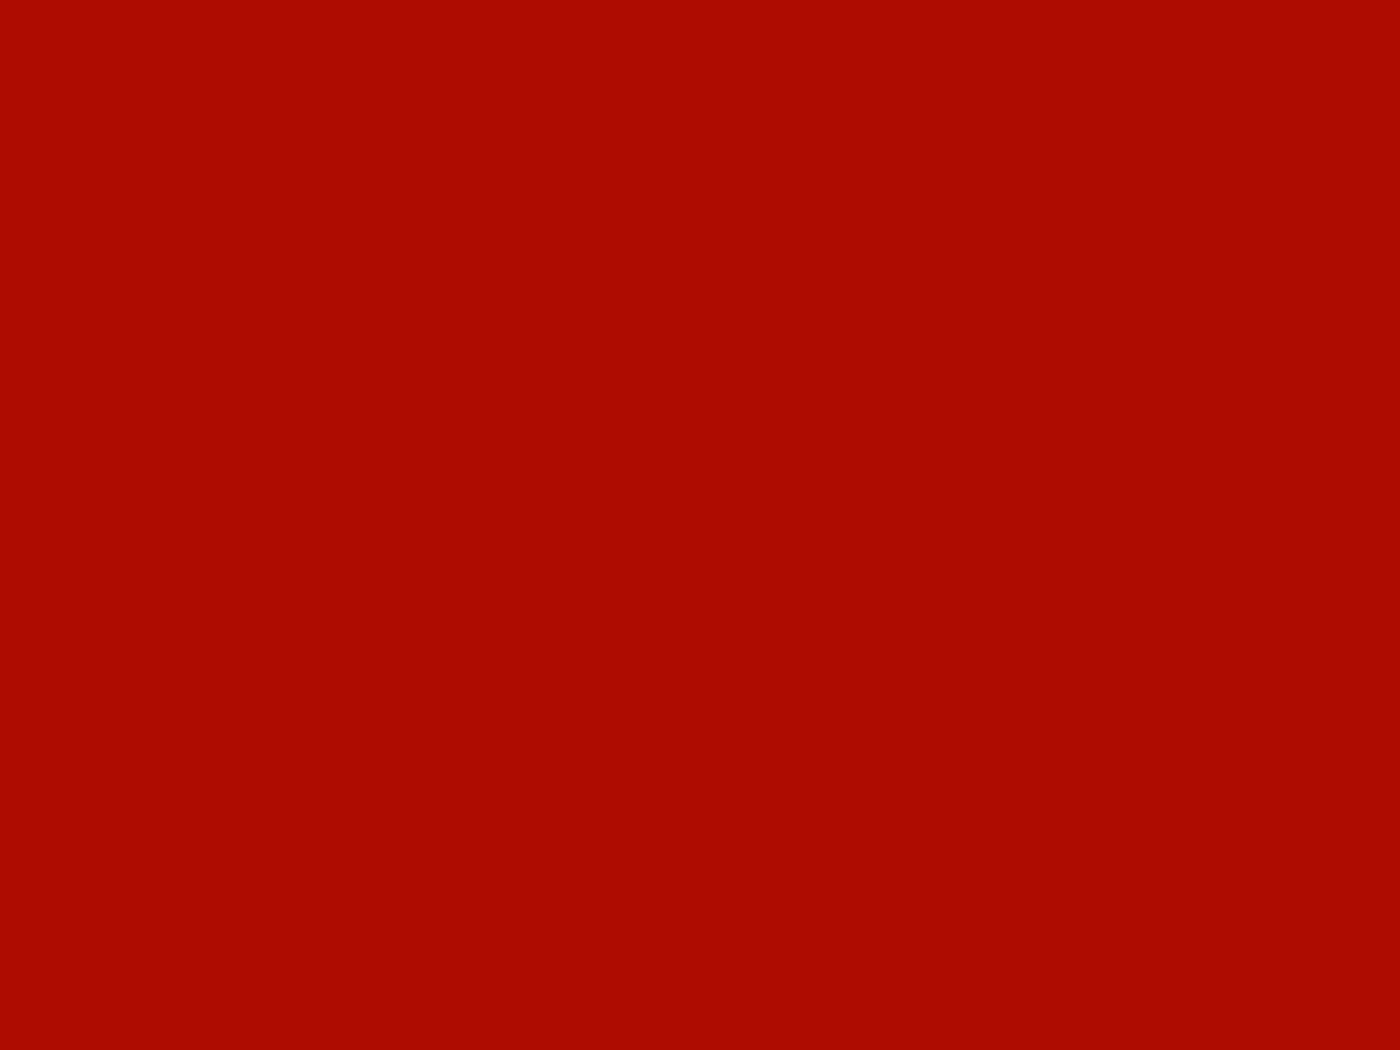 1400x1050 Mordant Red 19 Solid Color Background